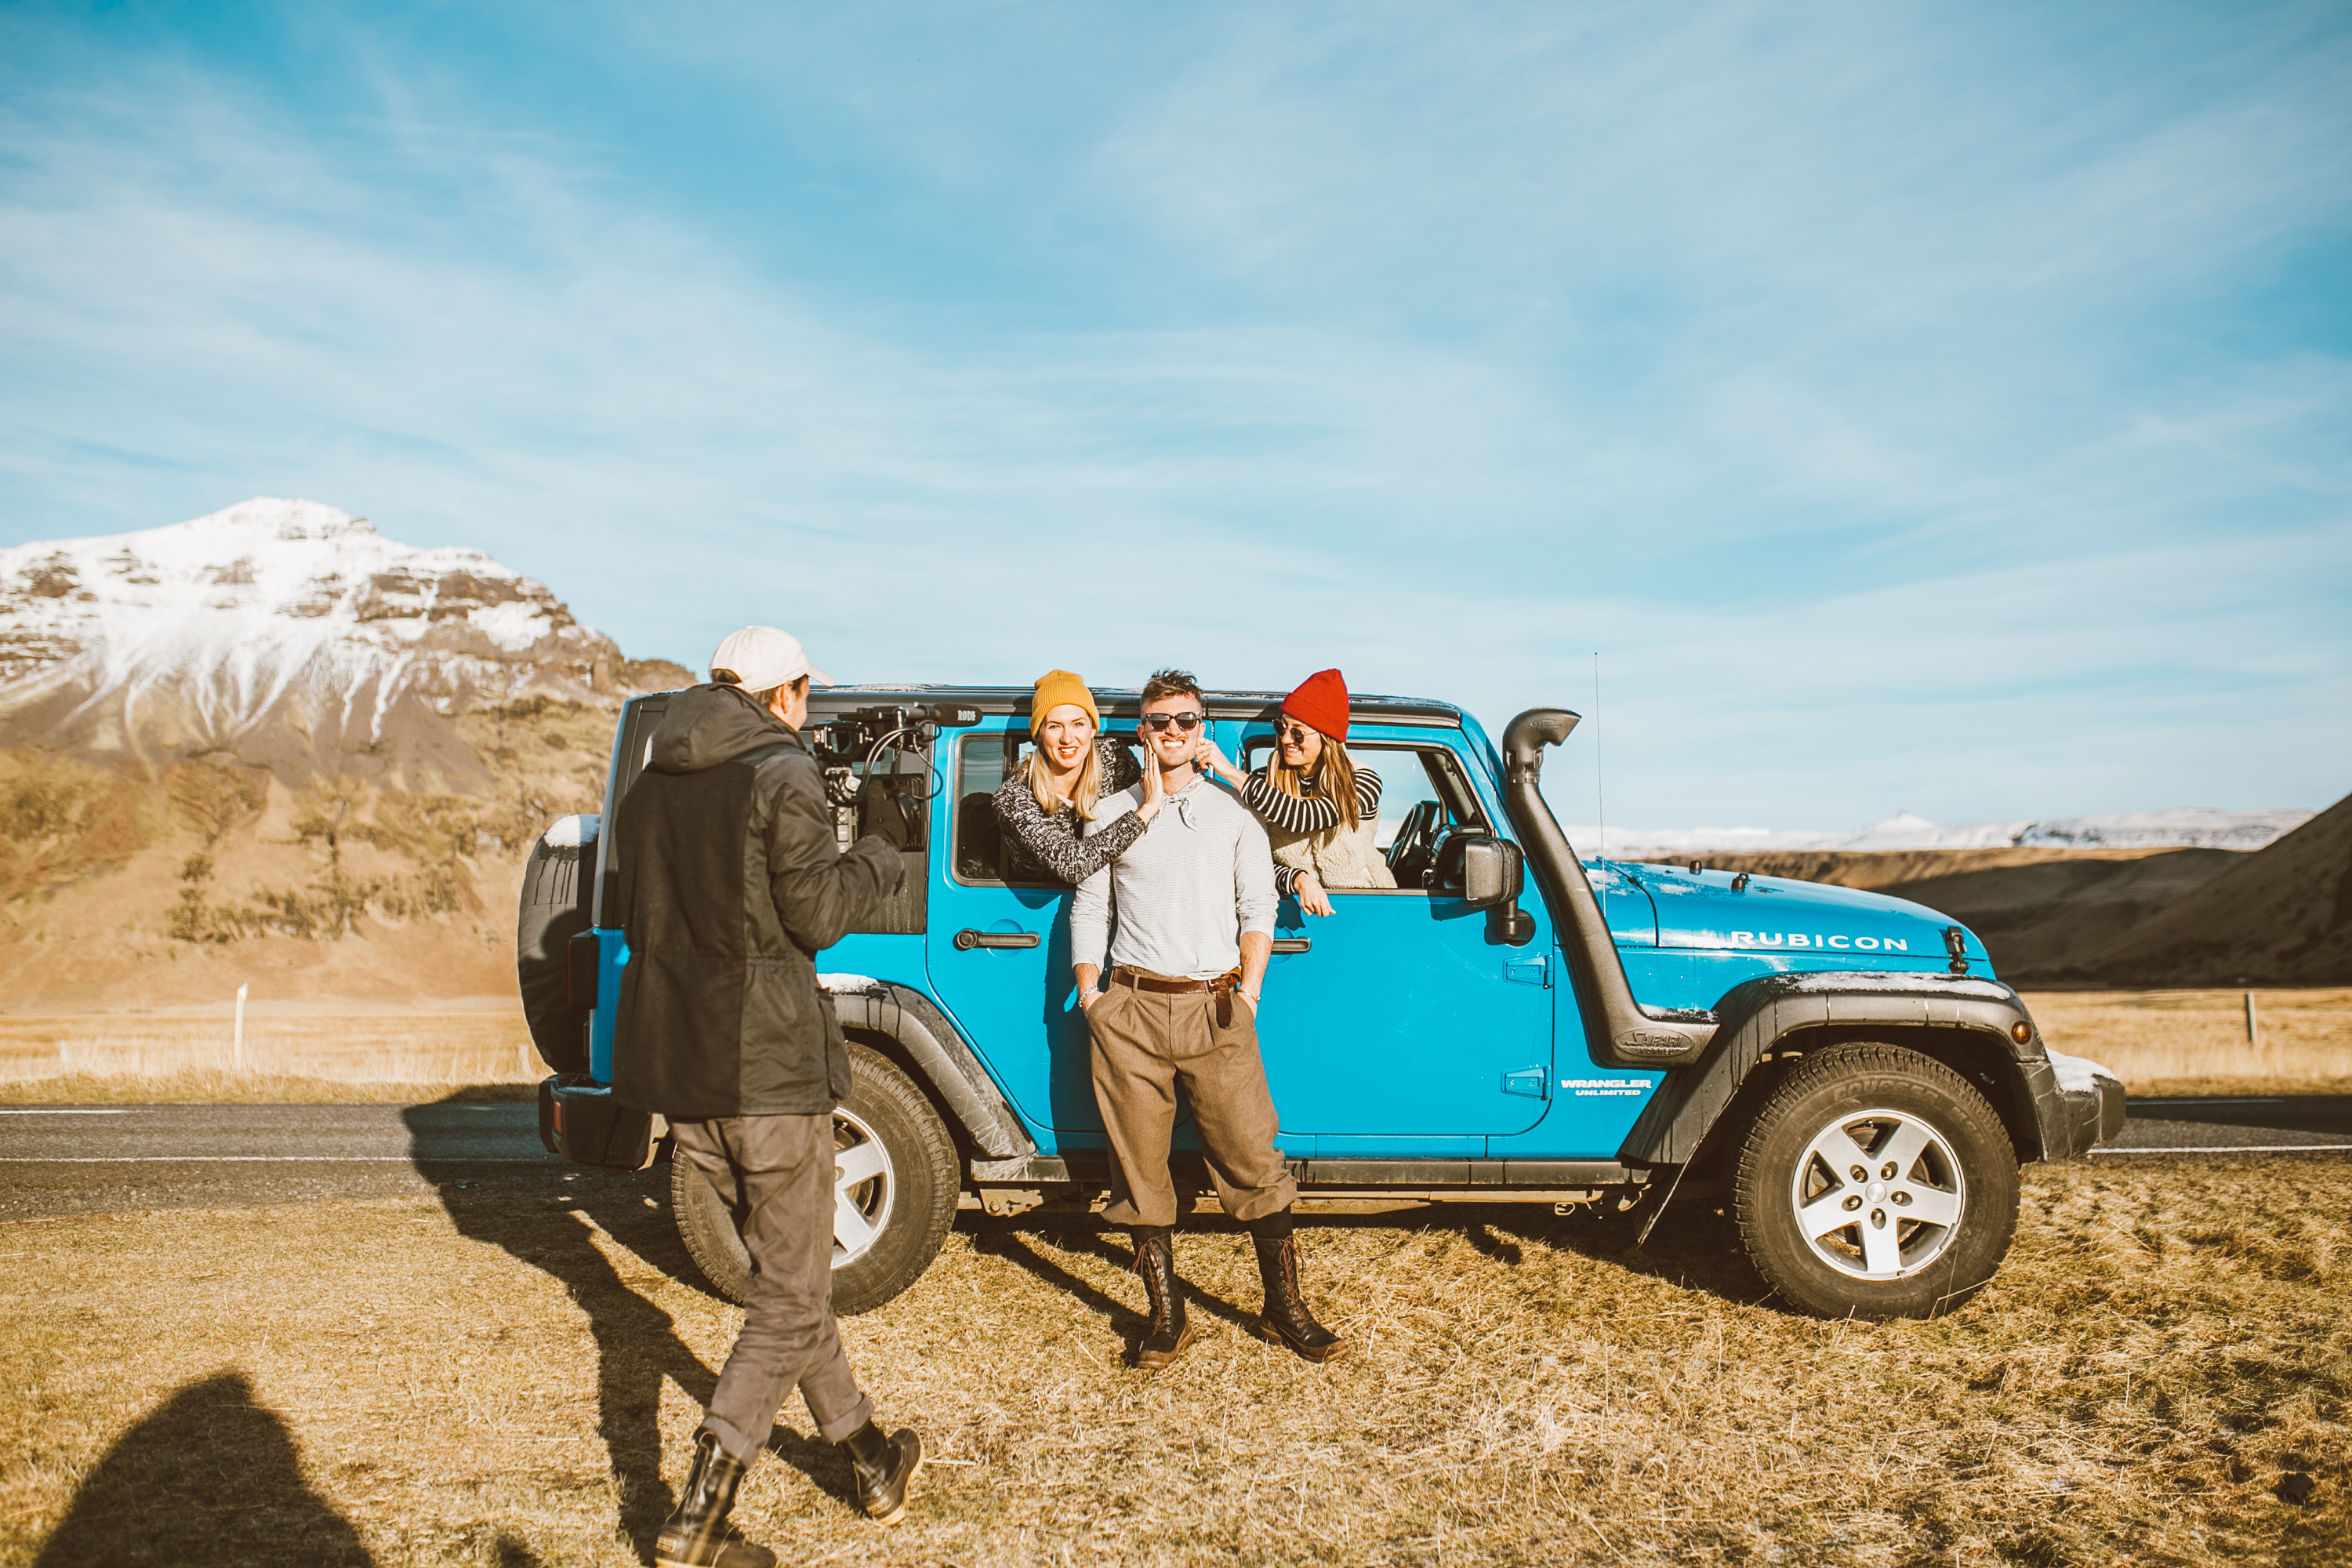 livvyland-blog-olivia-watson-travel-lifestyle-blogger-iceland-road-trip-what-to-do-pack-reykjavik-noken-travel-guide-jeep-wrangler